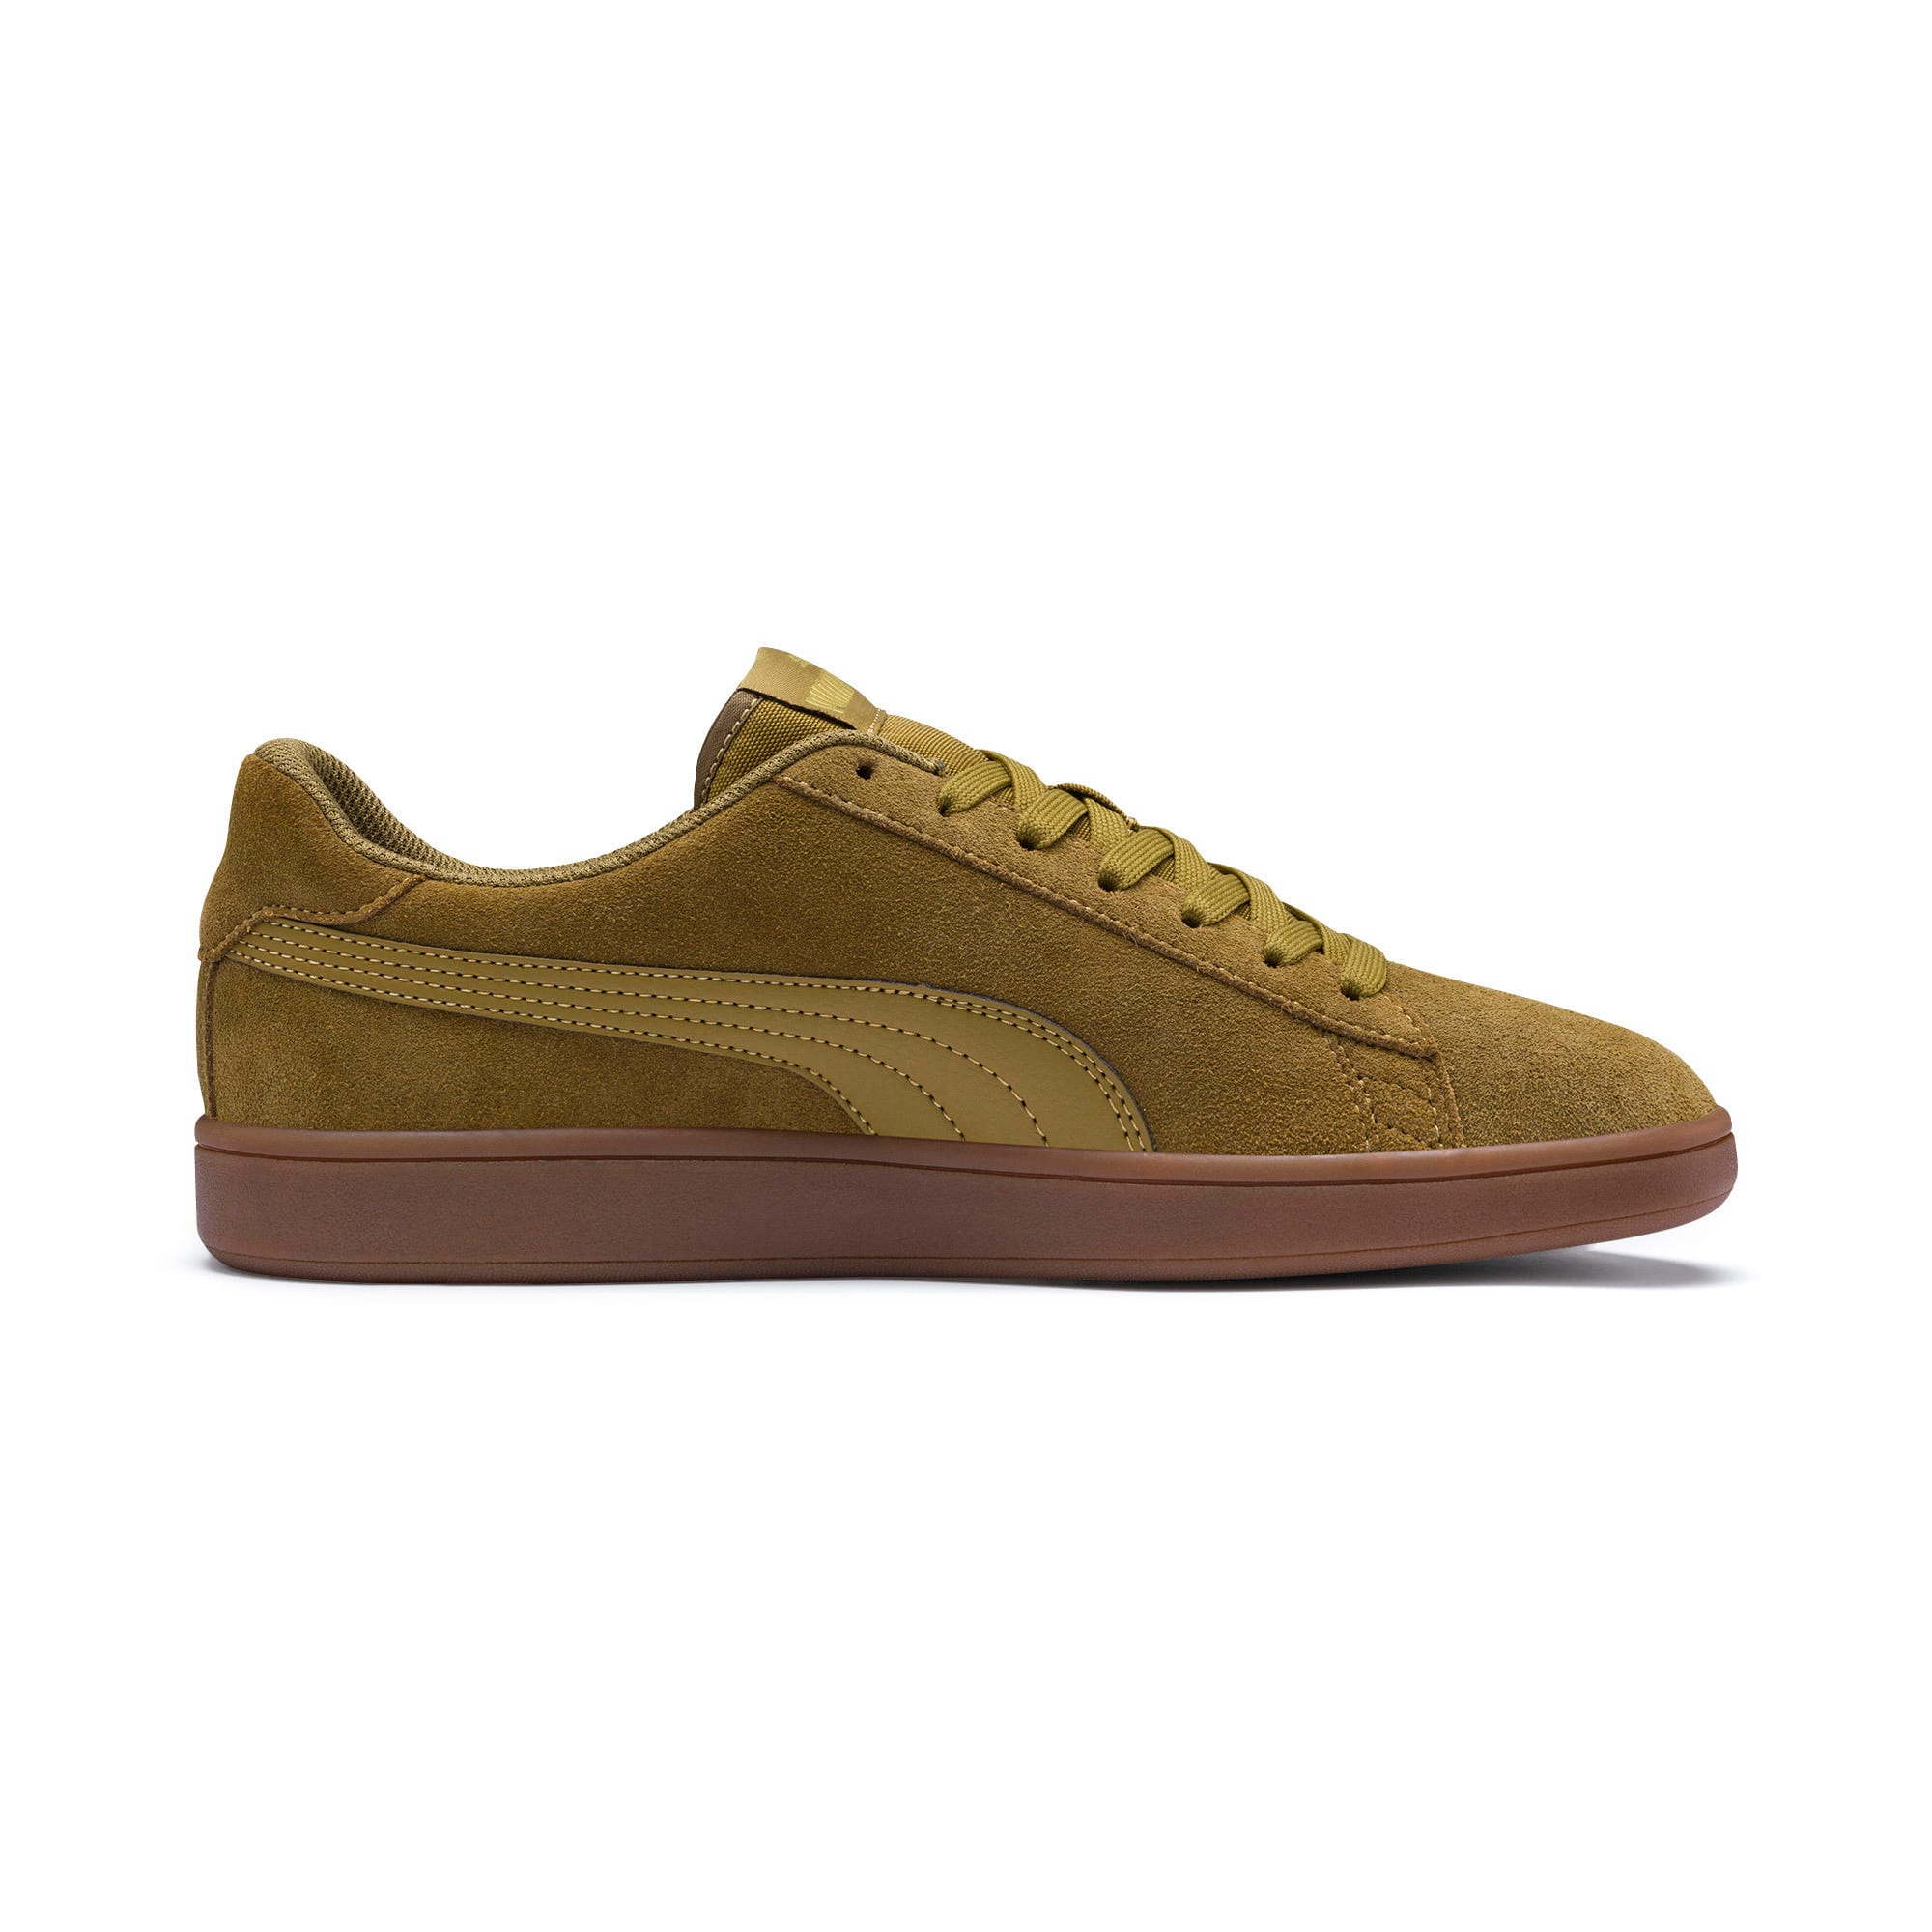 Thumbnail 6 of PUMA Smash v2 Sneakers, Moss Green-Team Gold-Gum, medium